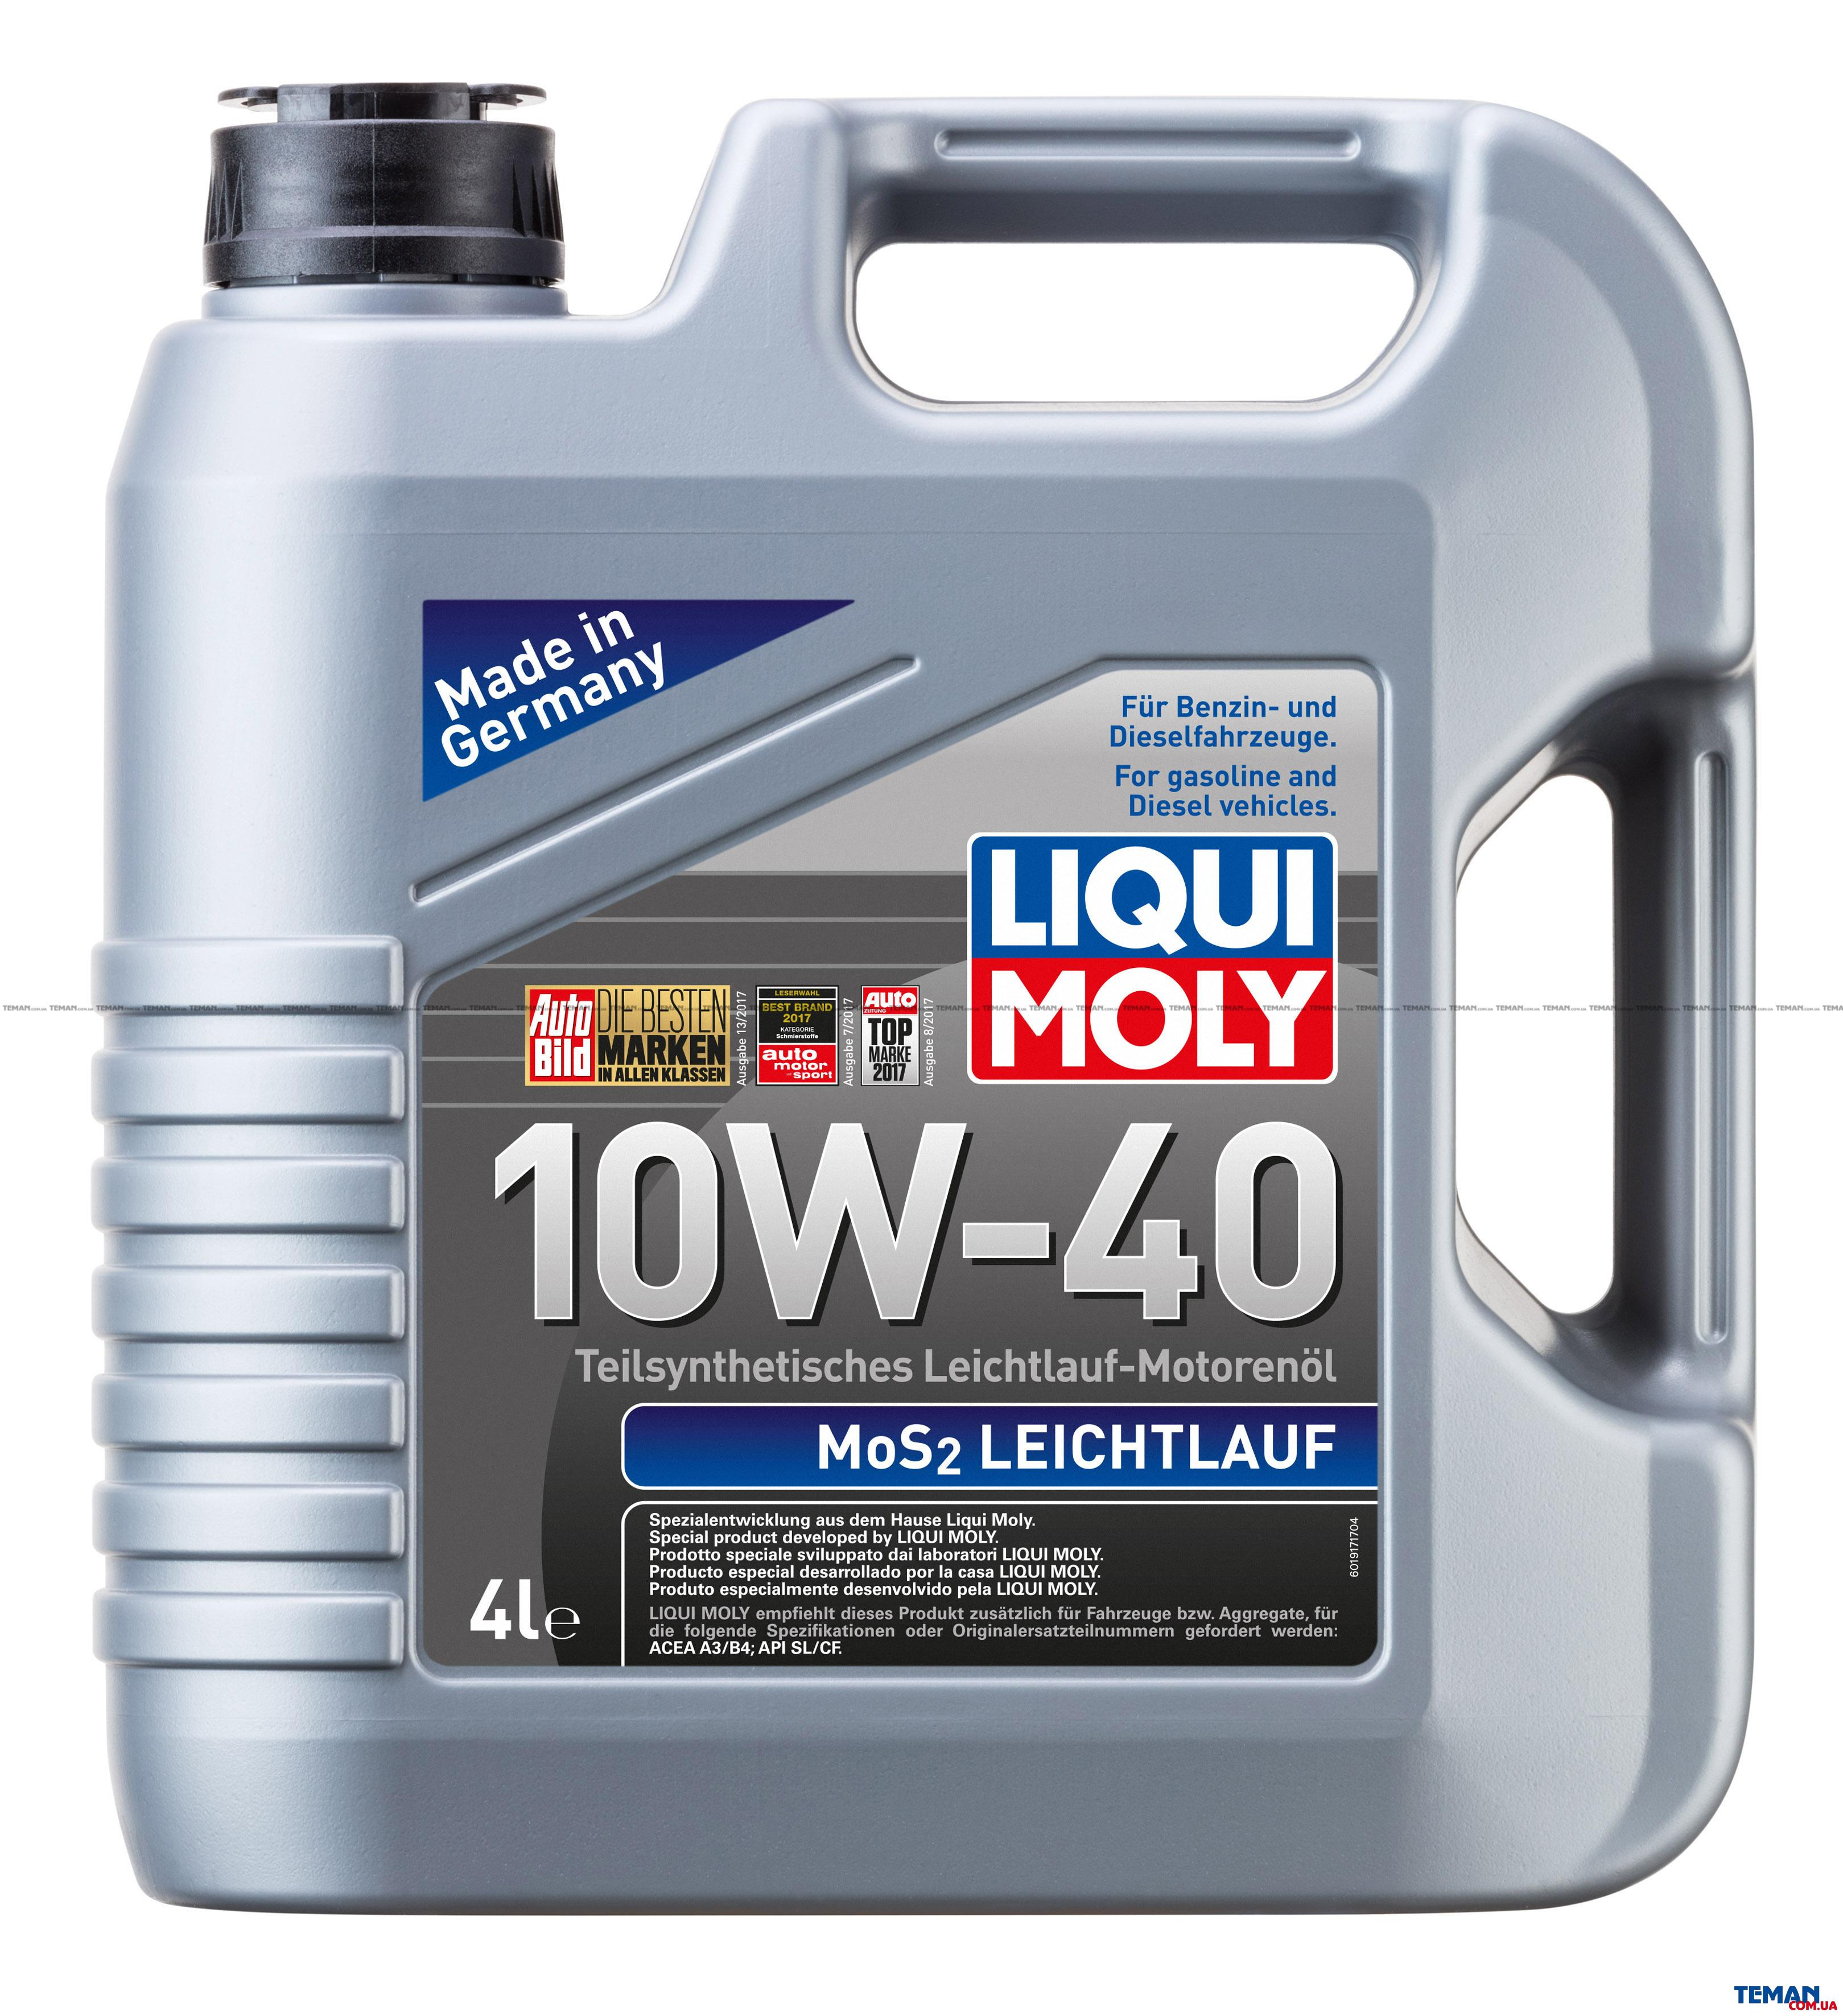 liqui moly mos2 leichtlauf 10w 40 4 1917. Black Bedroom Furniture Sets. Home Design Ideas